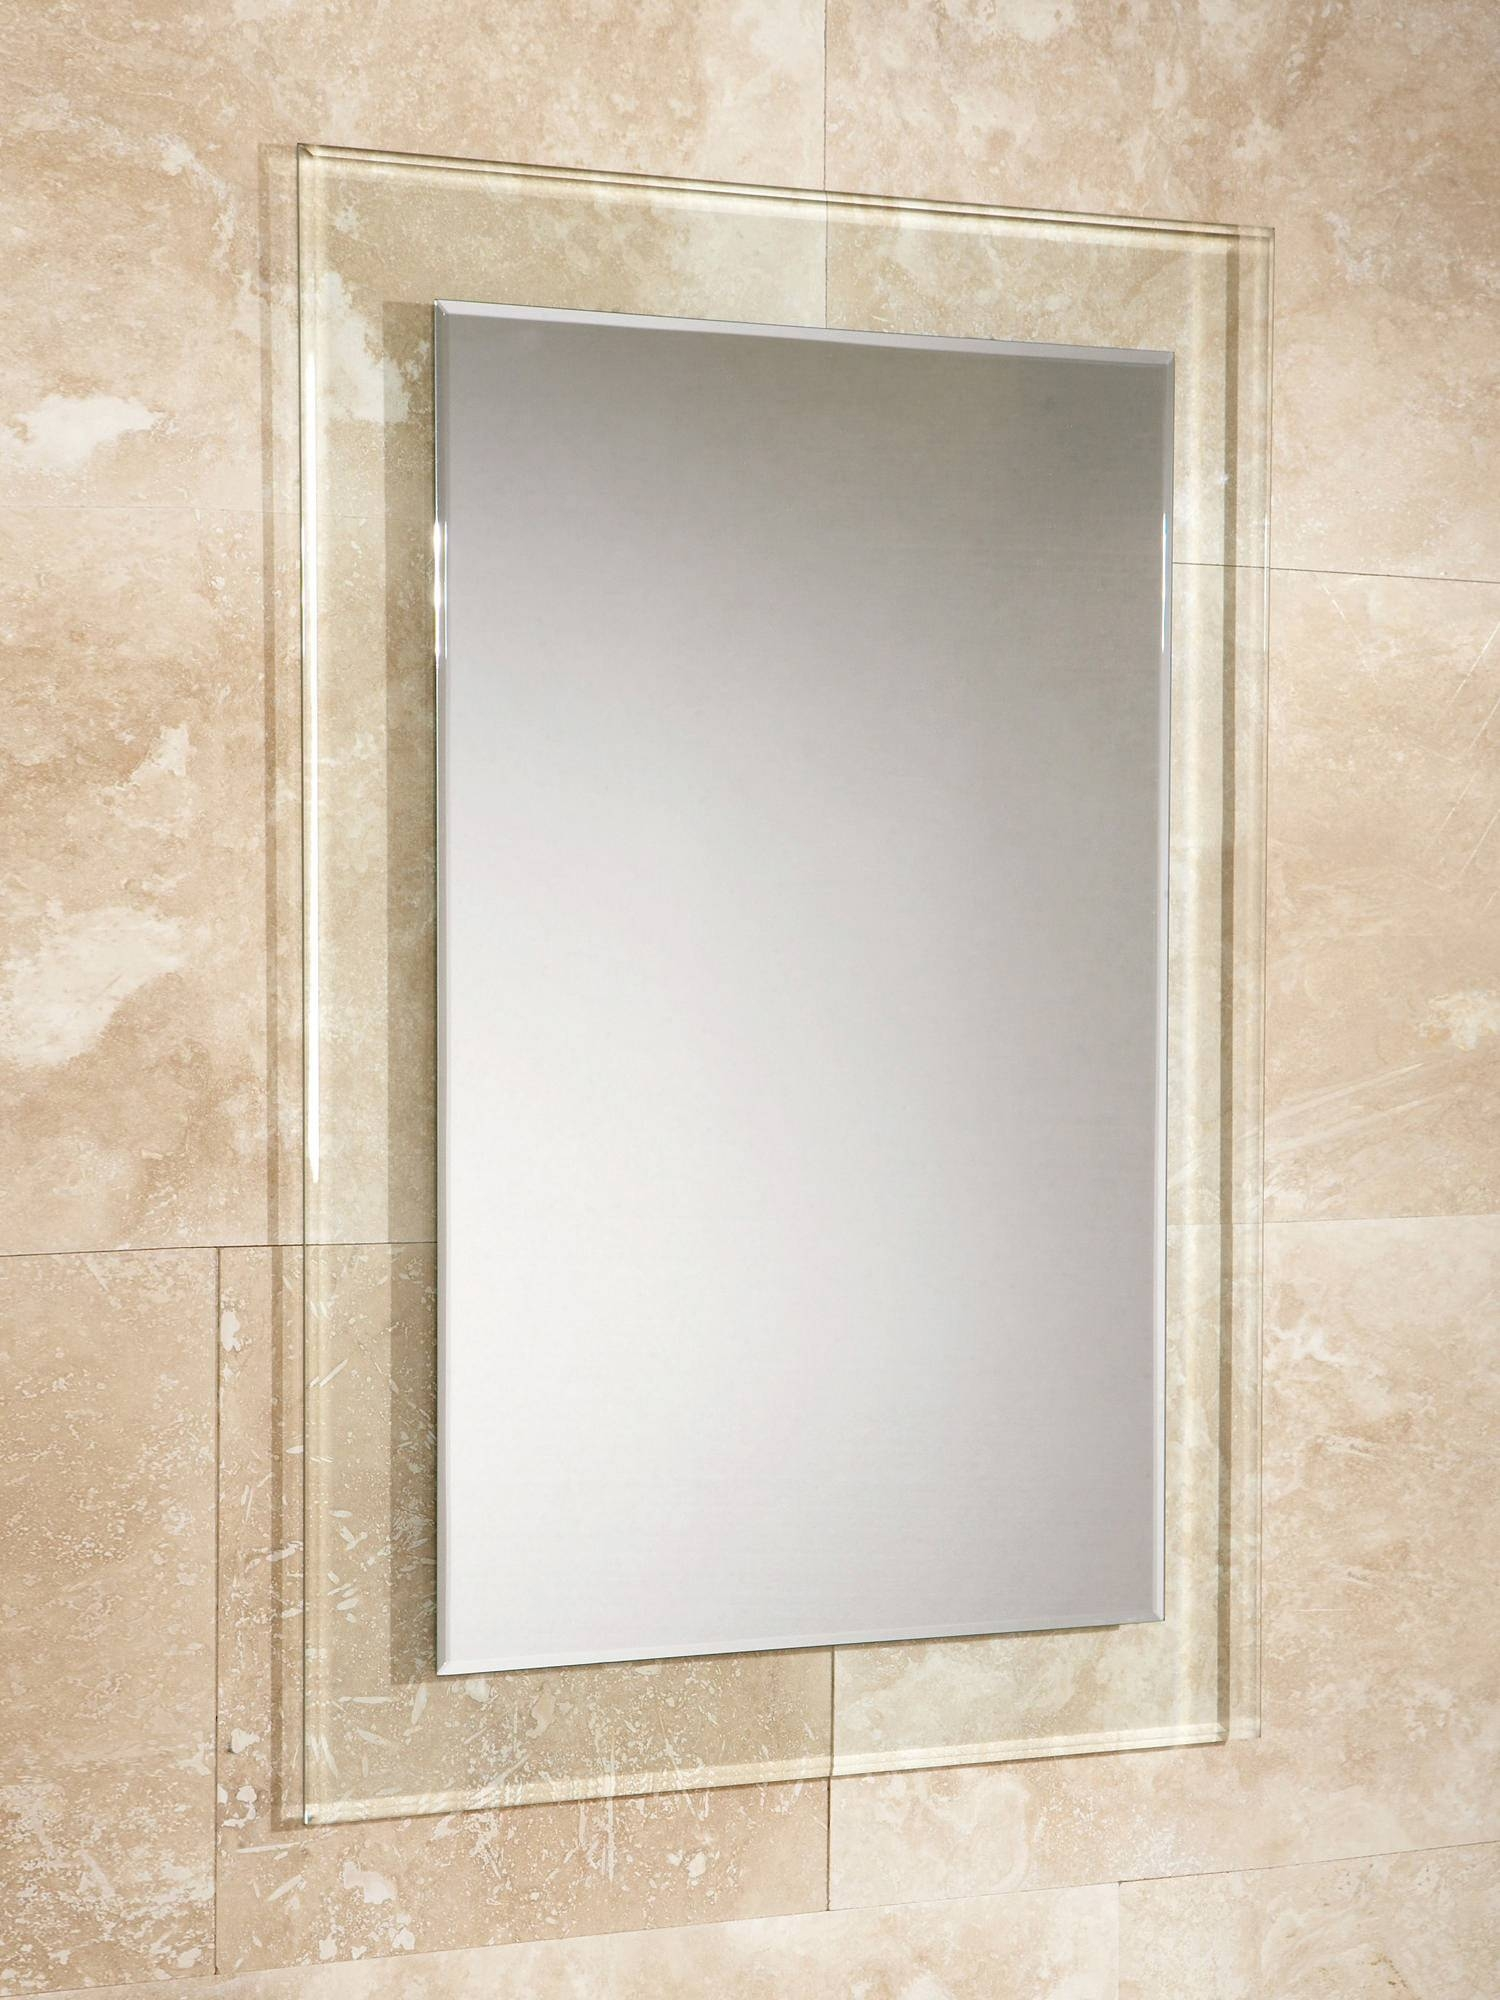 Hib Lola Bevelled Edge Mirror With Clear Glass Frame 500 X 700Mm For Bevelled Edge Mirrors (View 10 of 15)